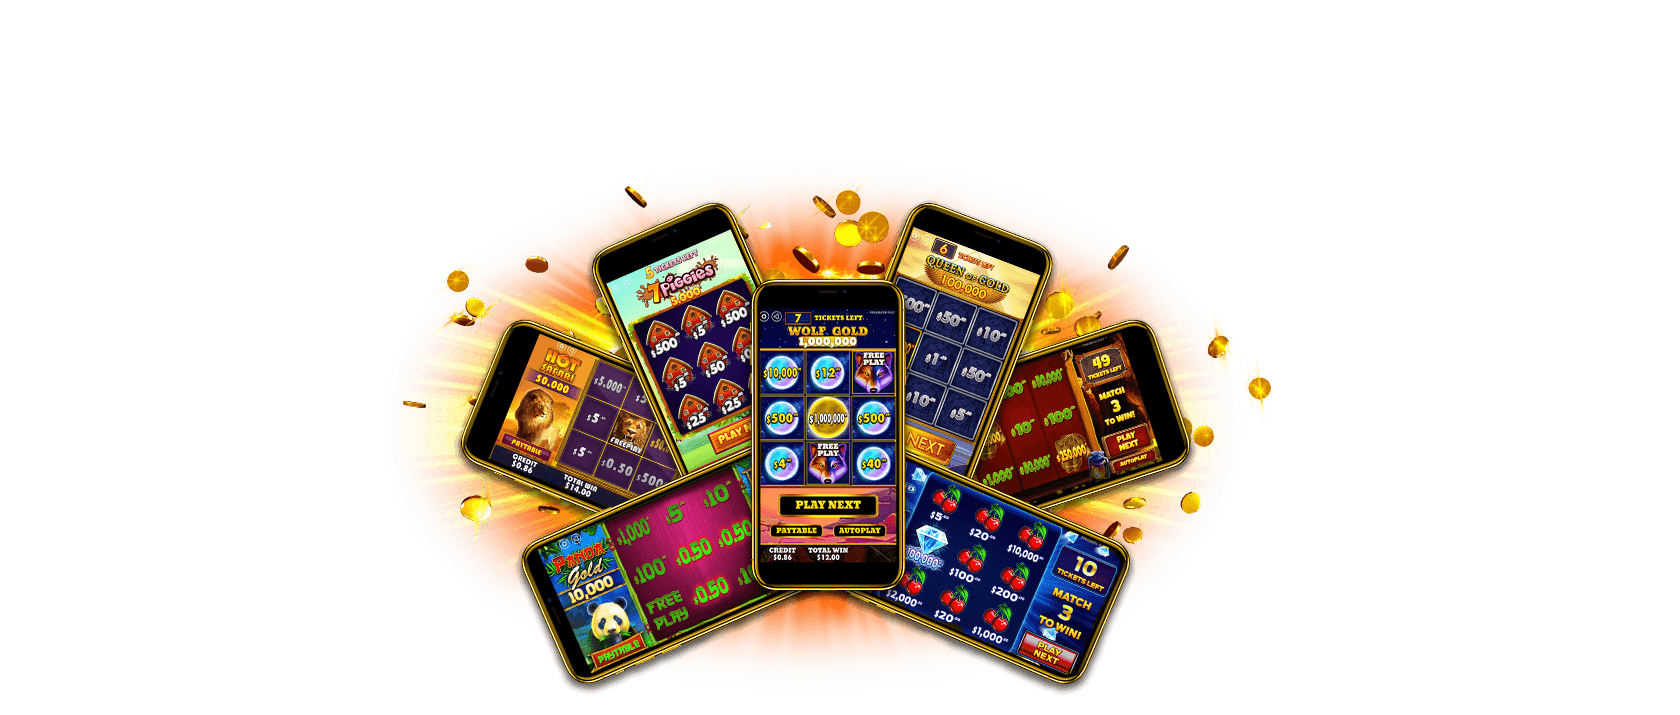 Casino Game Free Download For Mobile